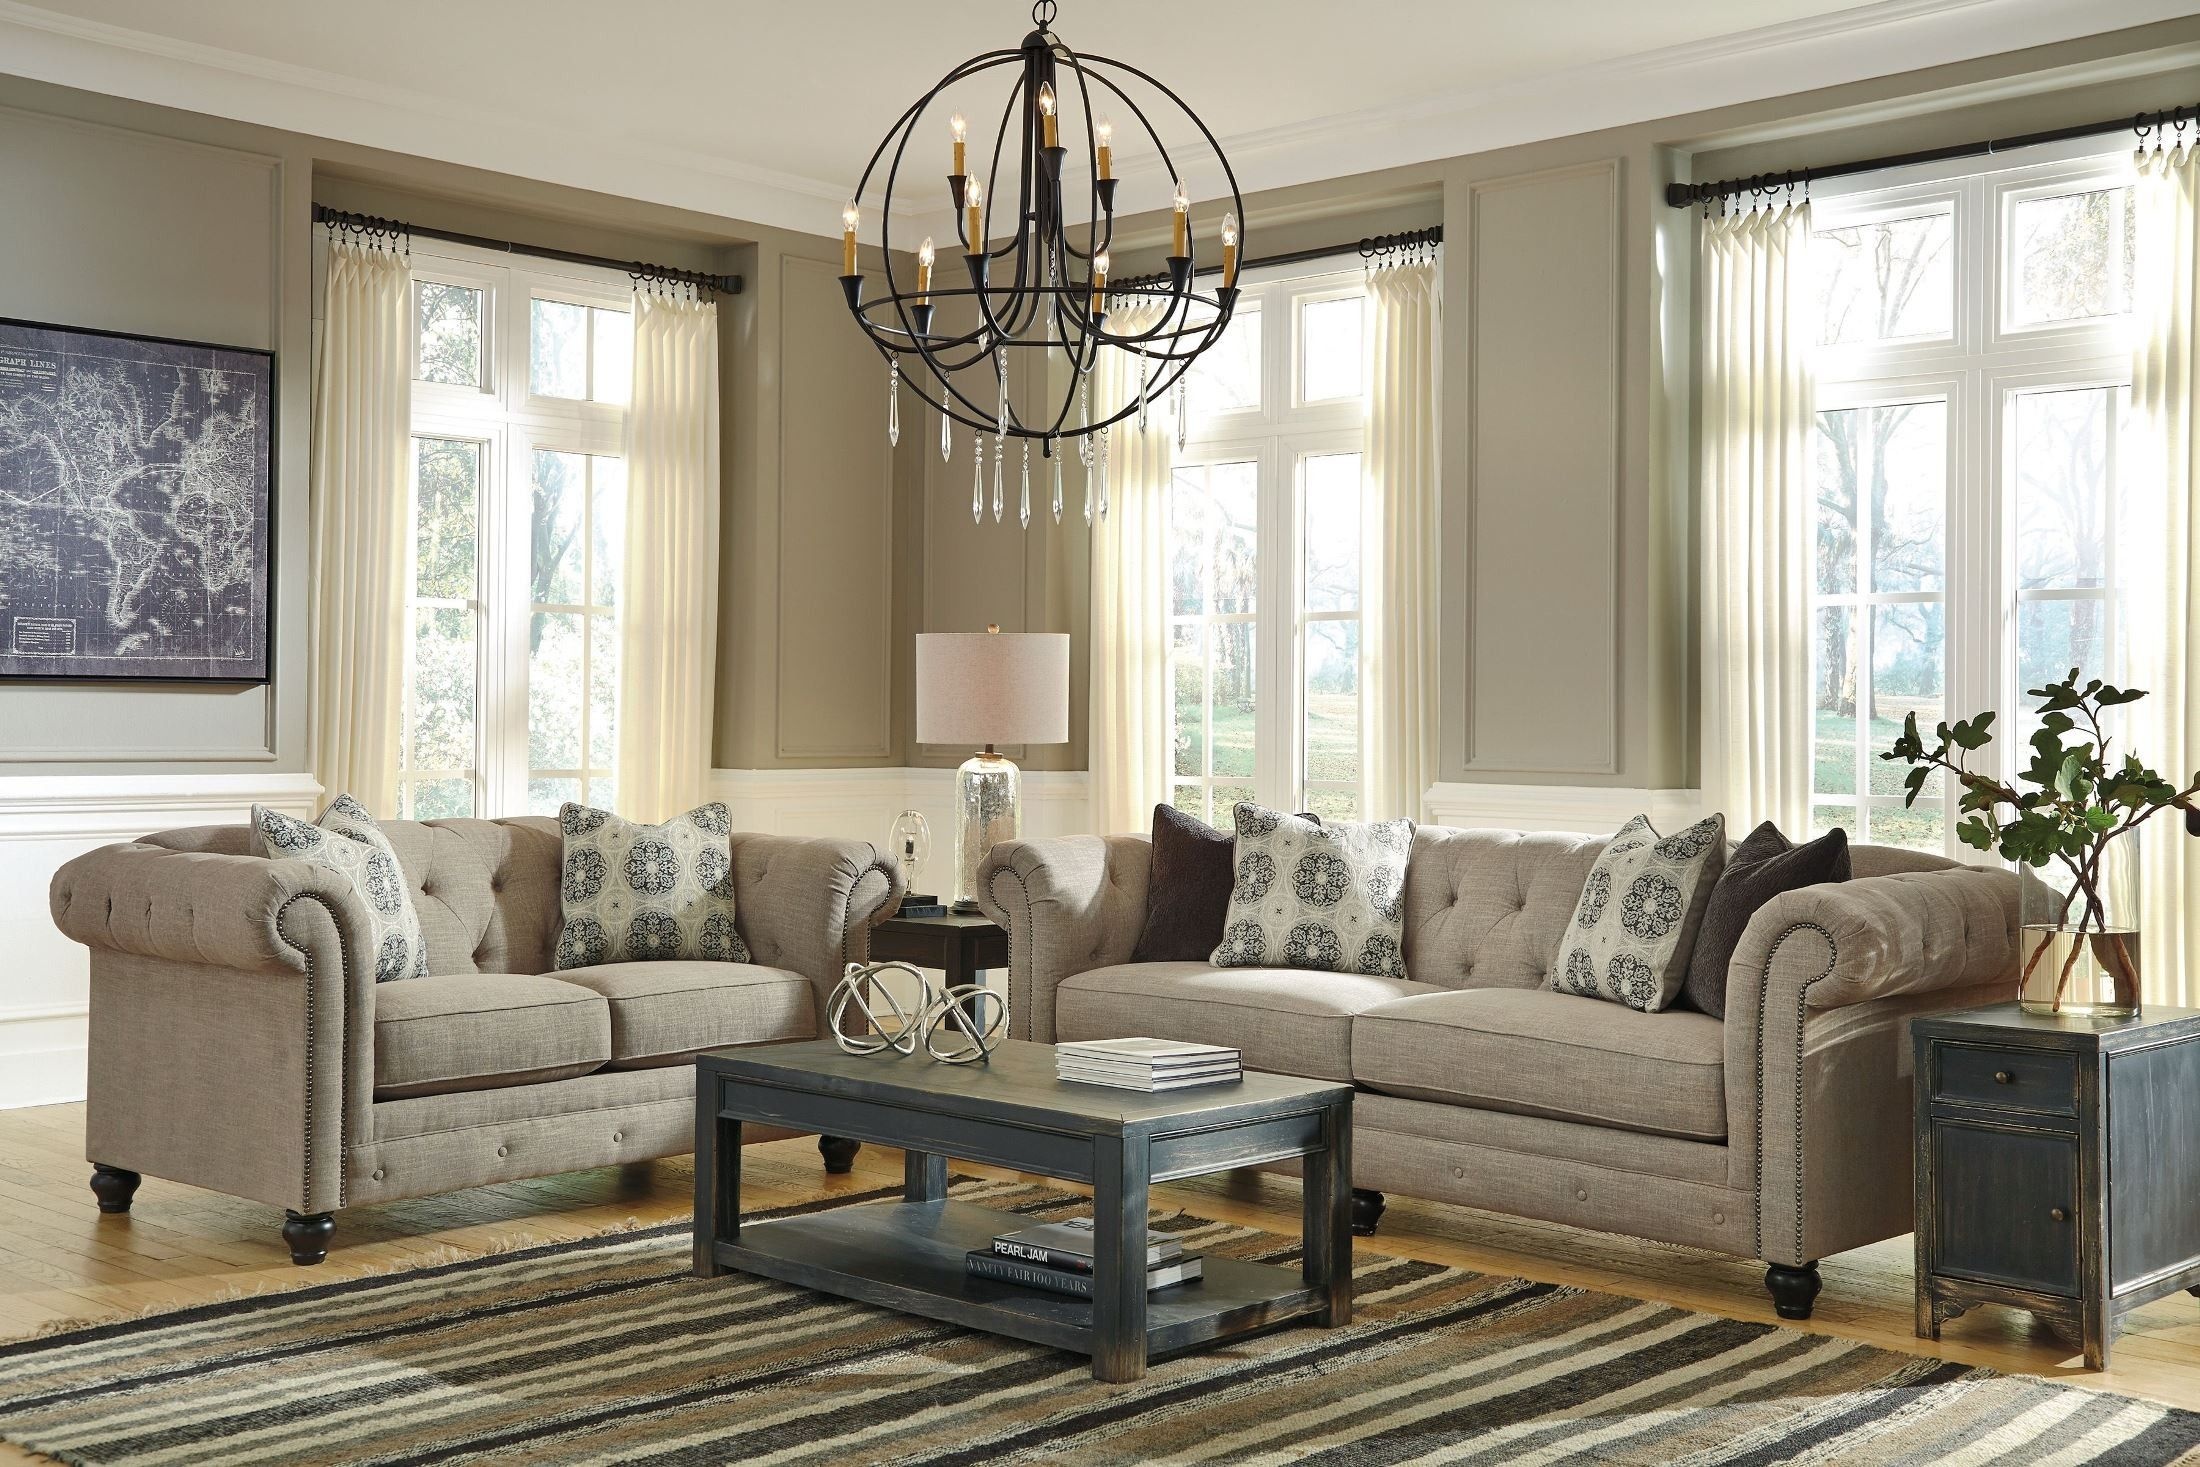 Living Room Sofa Azlyn Loveseat By Ashley Furniture At Kensington